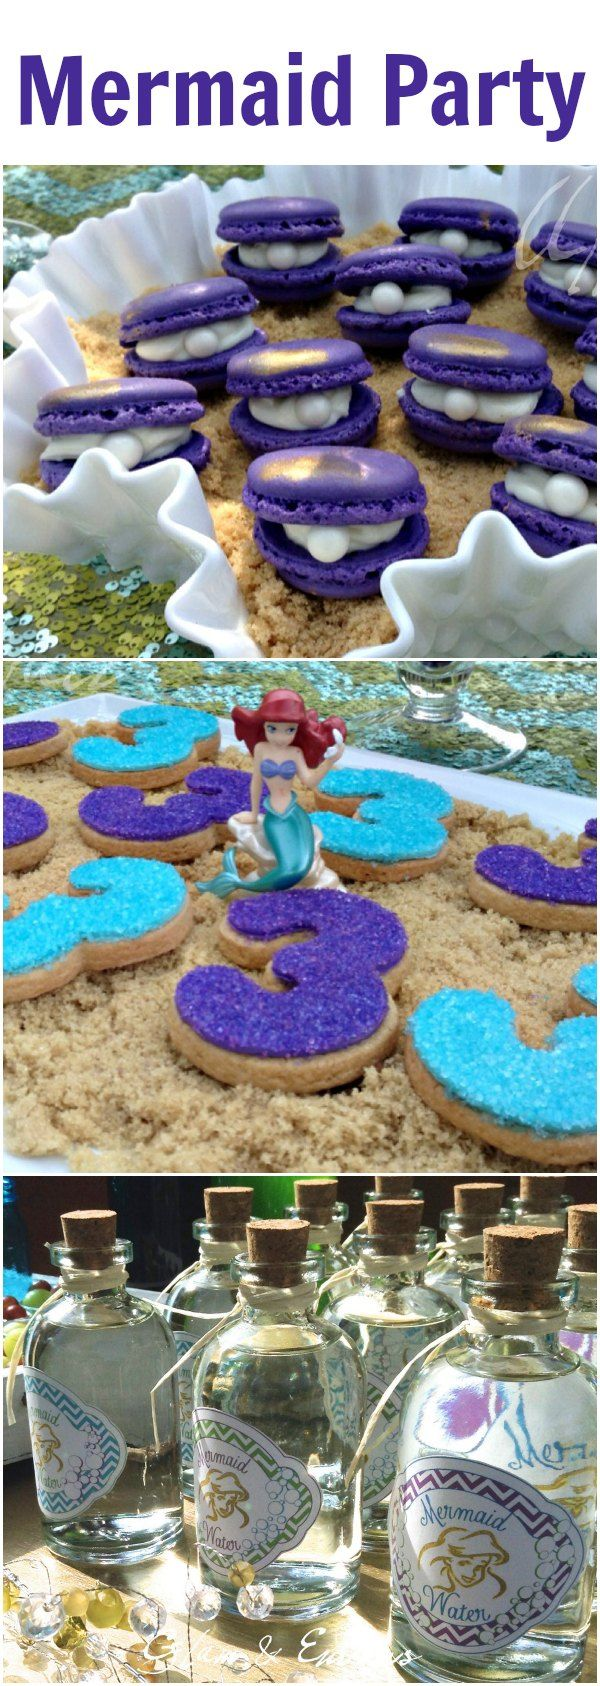 Mermaid Party ideas...love those pearl & oyster macaroons!